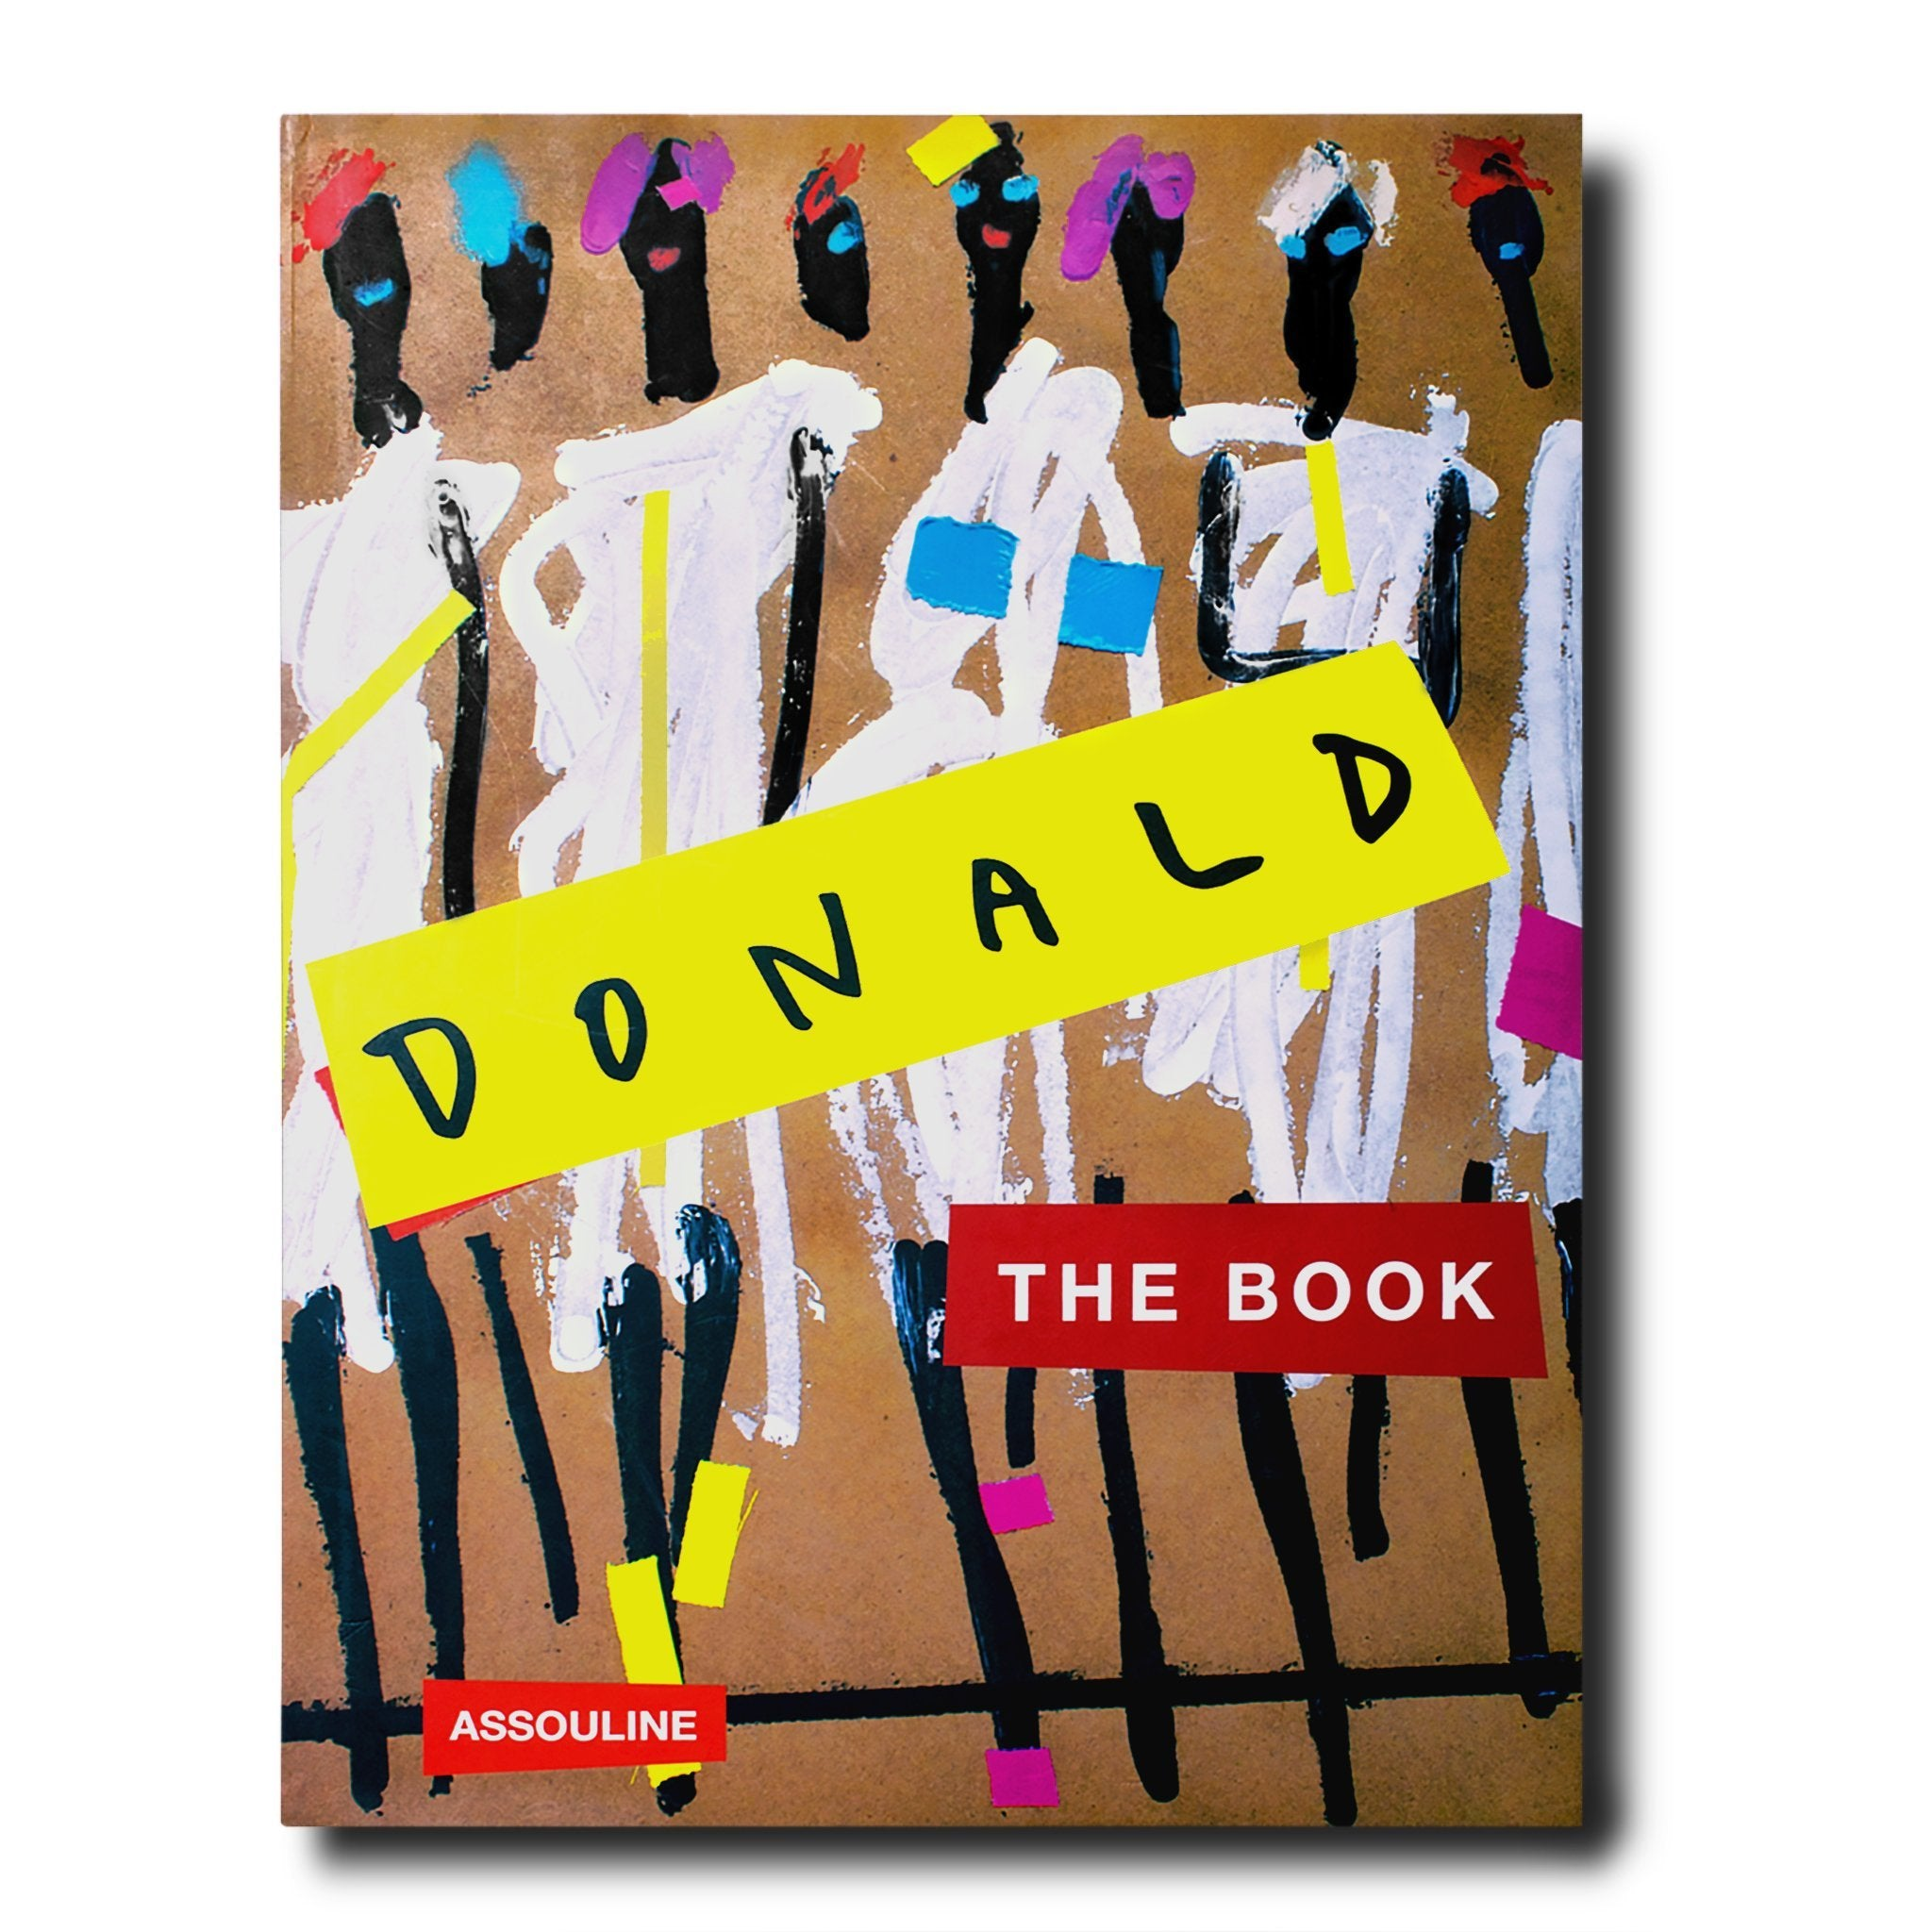 Book 'Donald: The Book'